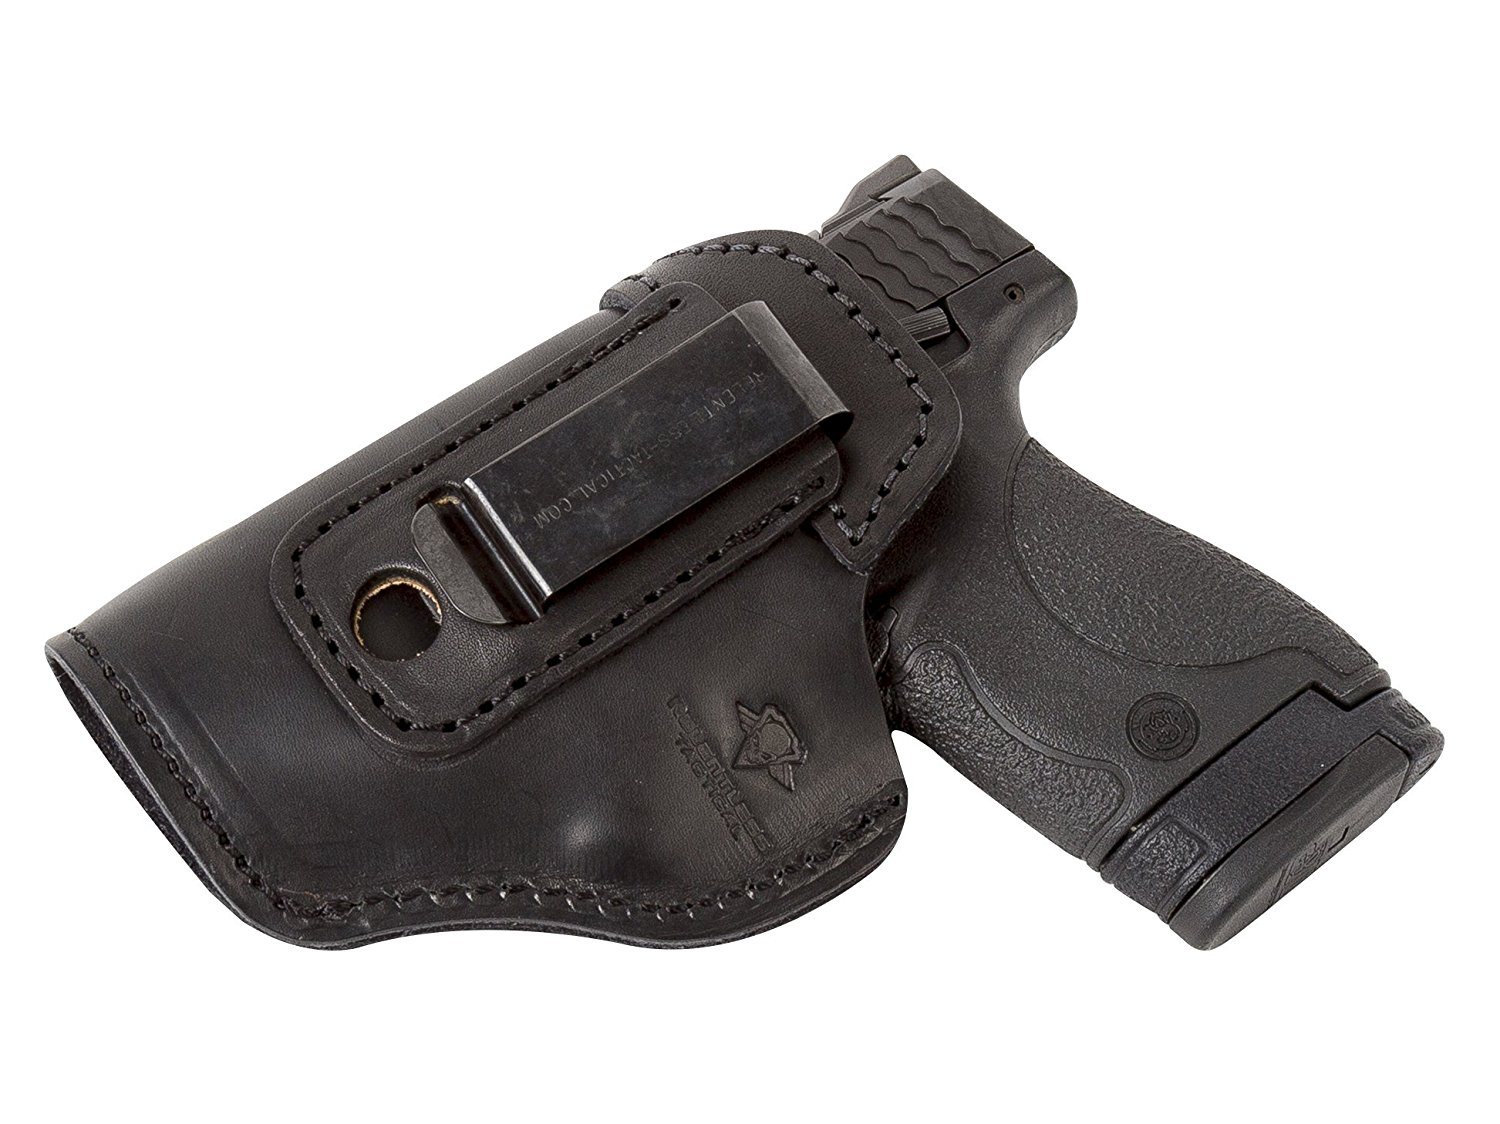 image of The Defender Leather IWB Holster by Relentless Tactical with gun inside